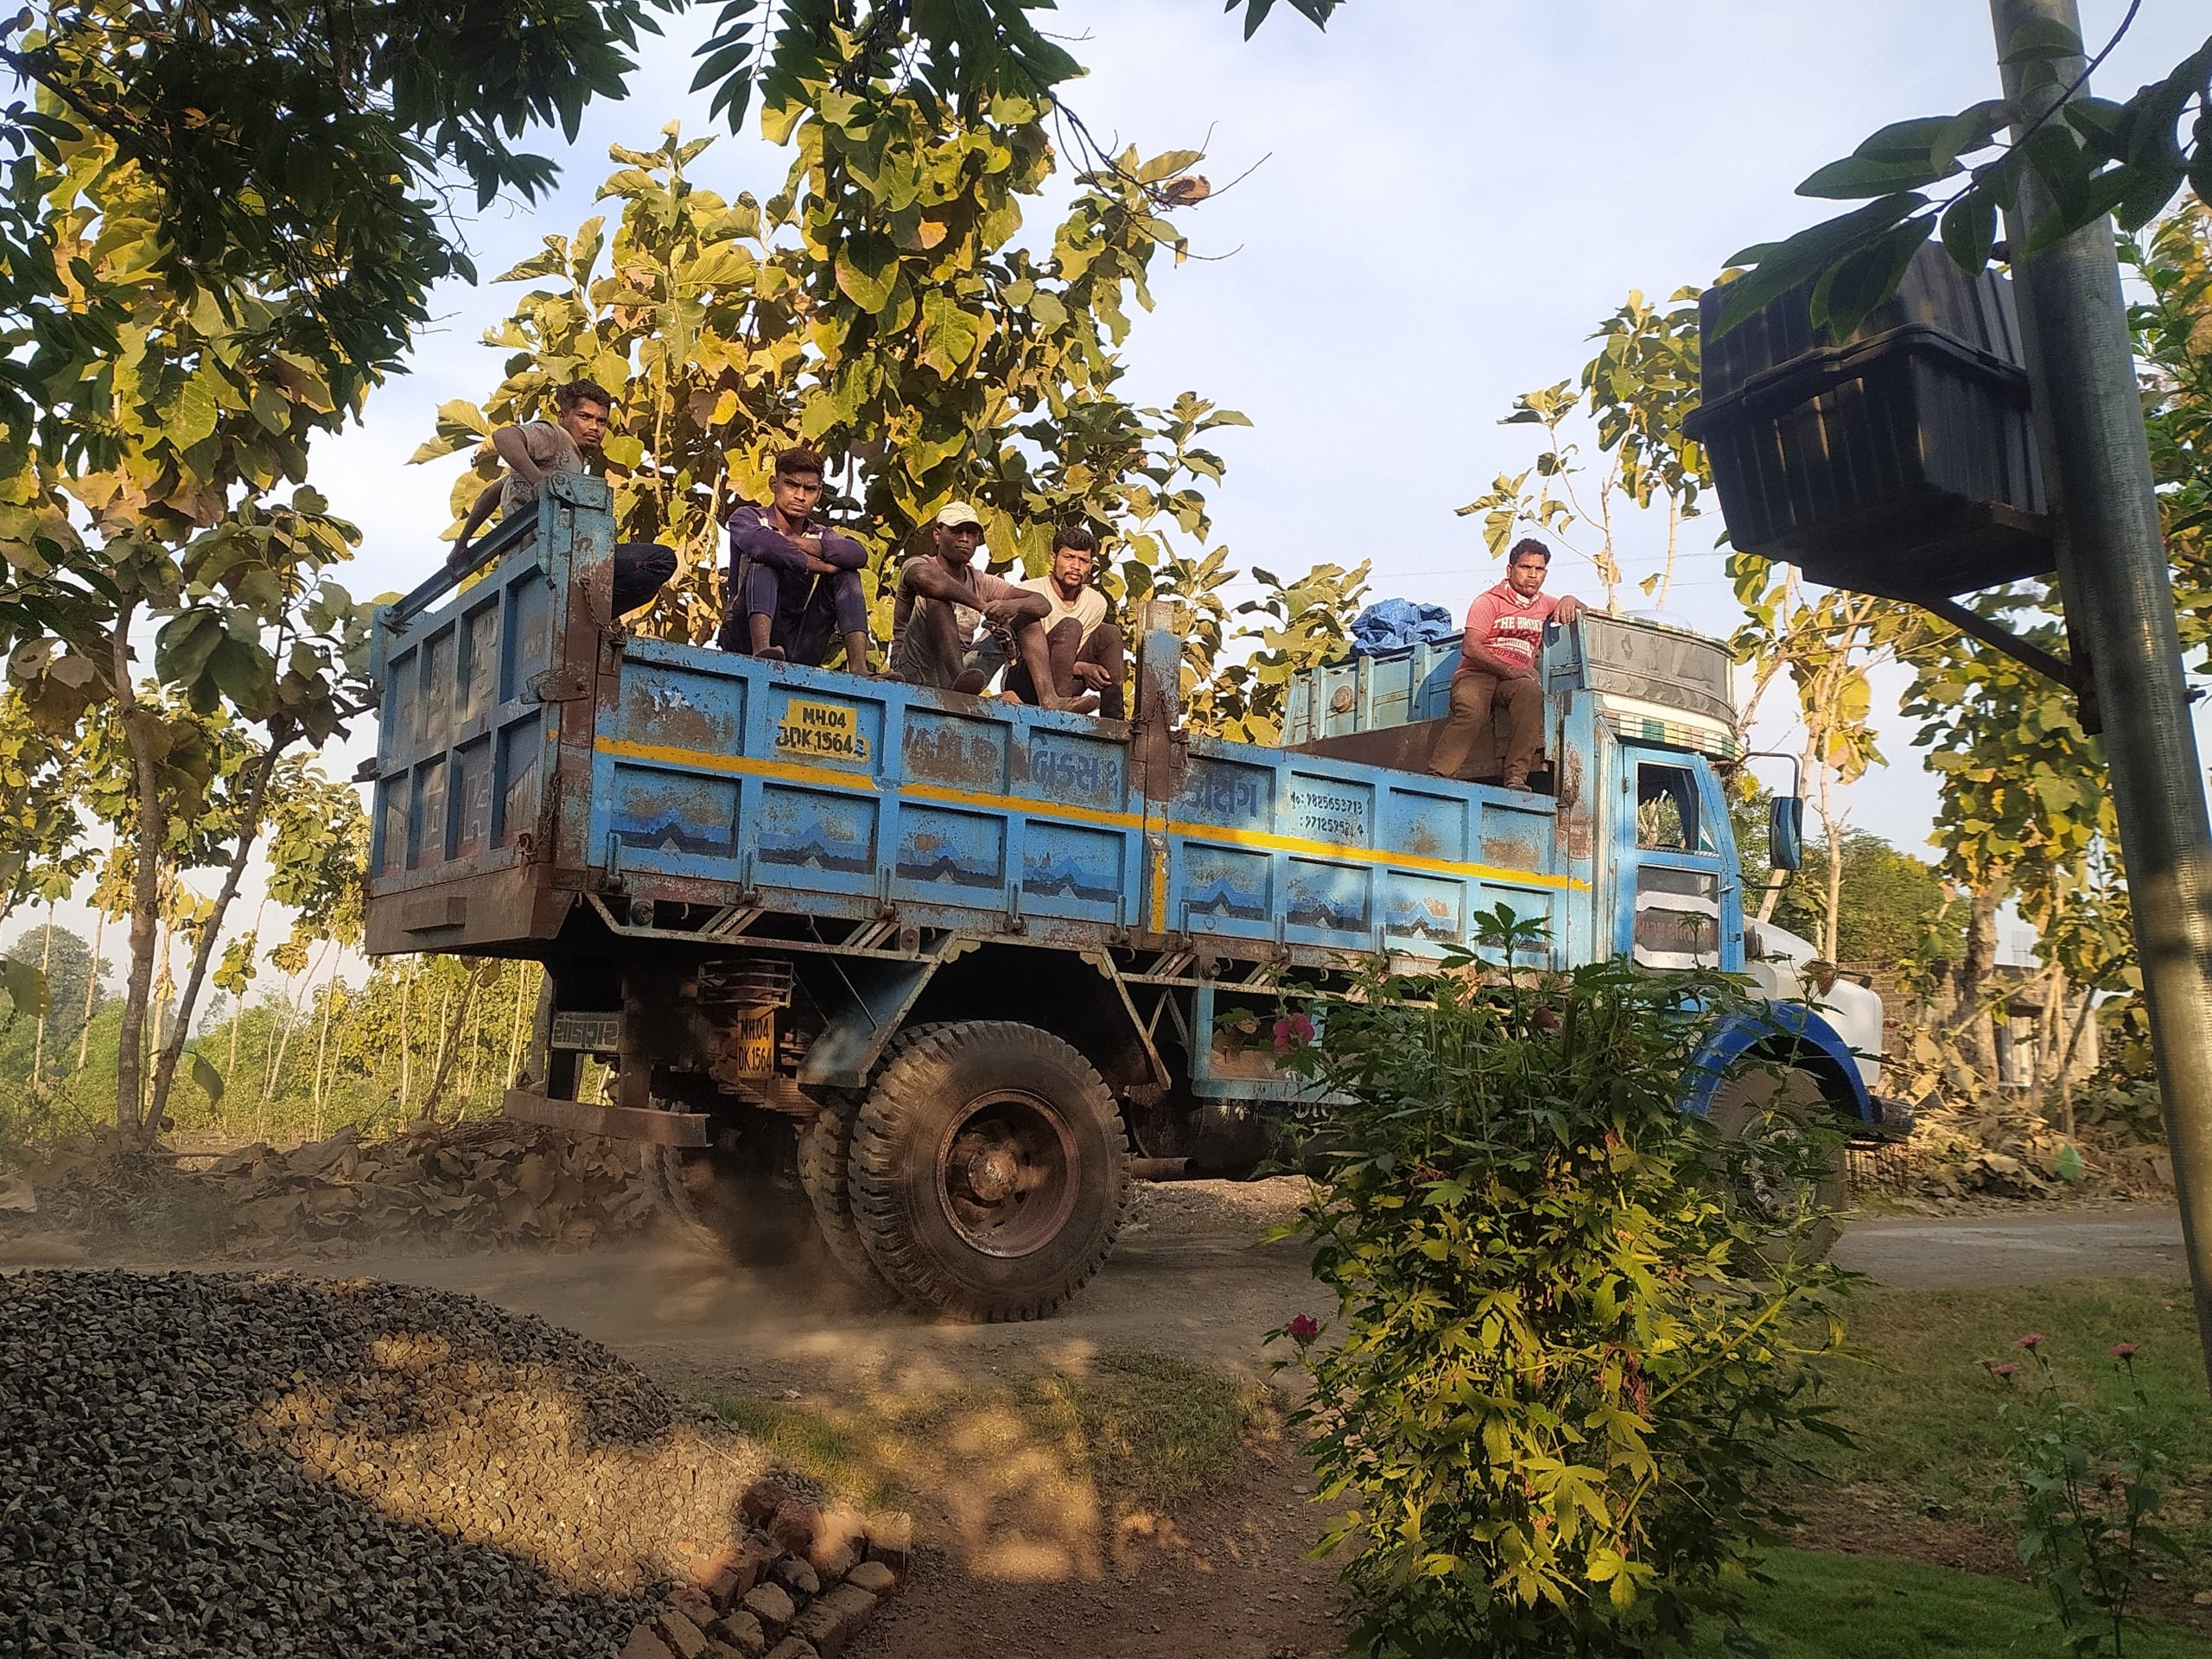 Boys traveling in a truck